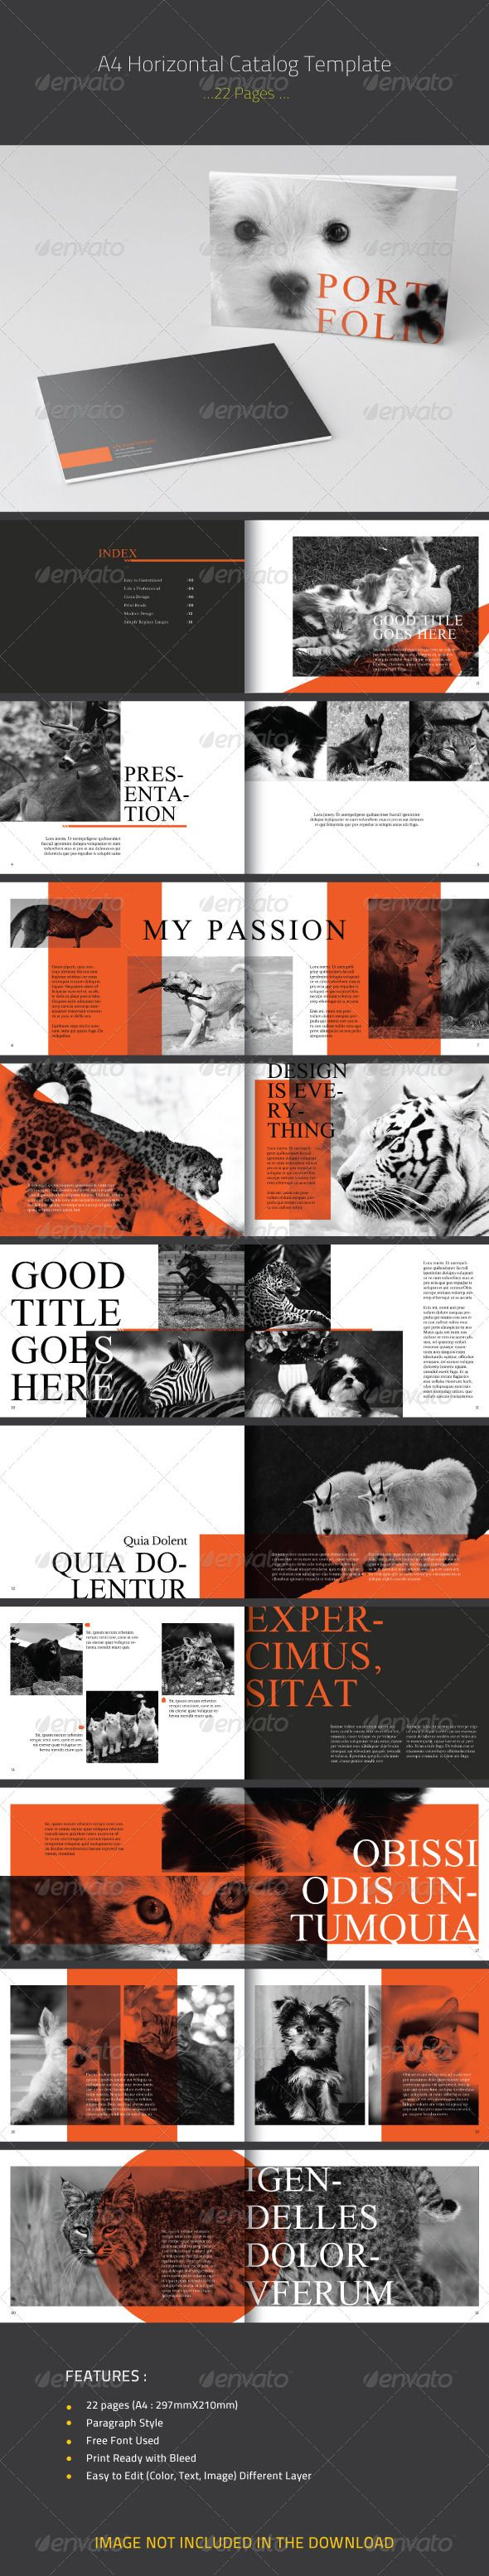 Horizontal Catalog A4 Template   Free Font Used  Print Ready with Bleed  Easy to Edit (Color, Text, Image) Different Layer  Adobe InDesign CS4 (indd) and CS3 (idml)  Automatic Page Number  Font Used :   Galatia-SIL  libre-baskerville  Photos used in the preview are not included                    Layered:   Yes                   Minimum Adobe CS Version:   CS3                   Print Dimensions:   21x29.7             Tags      a4